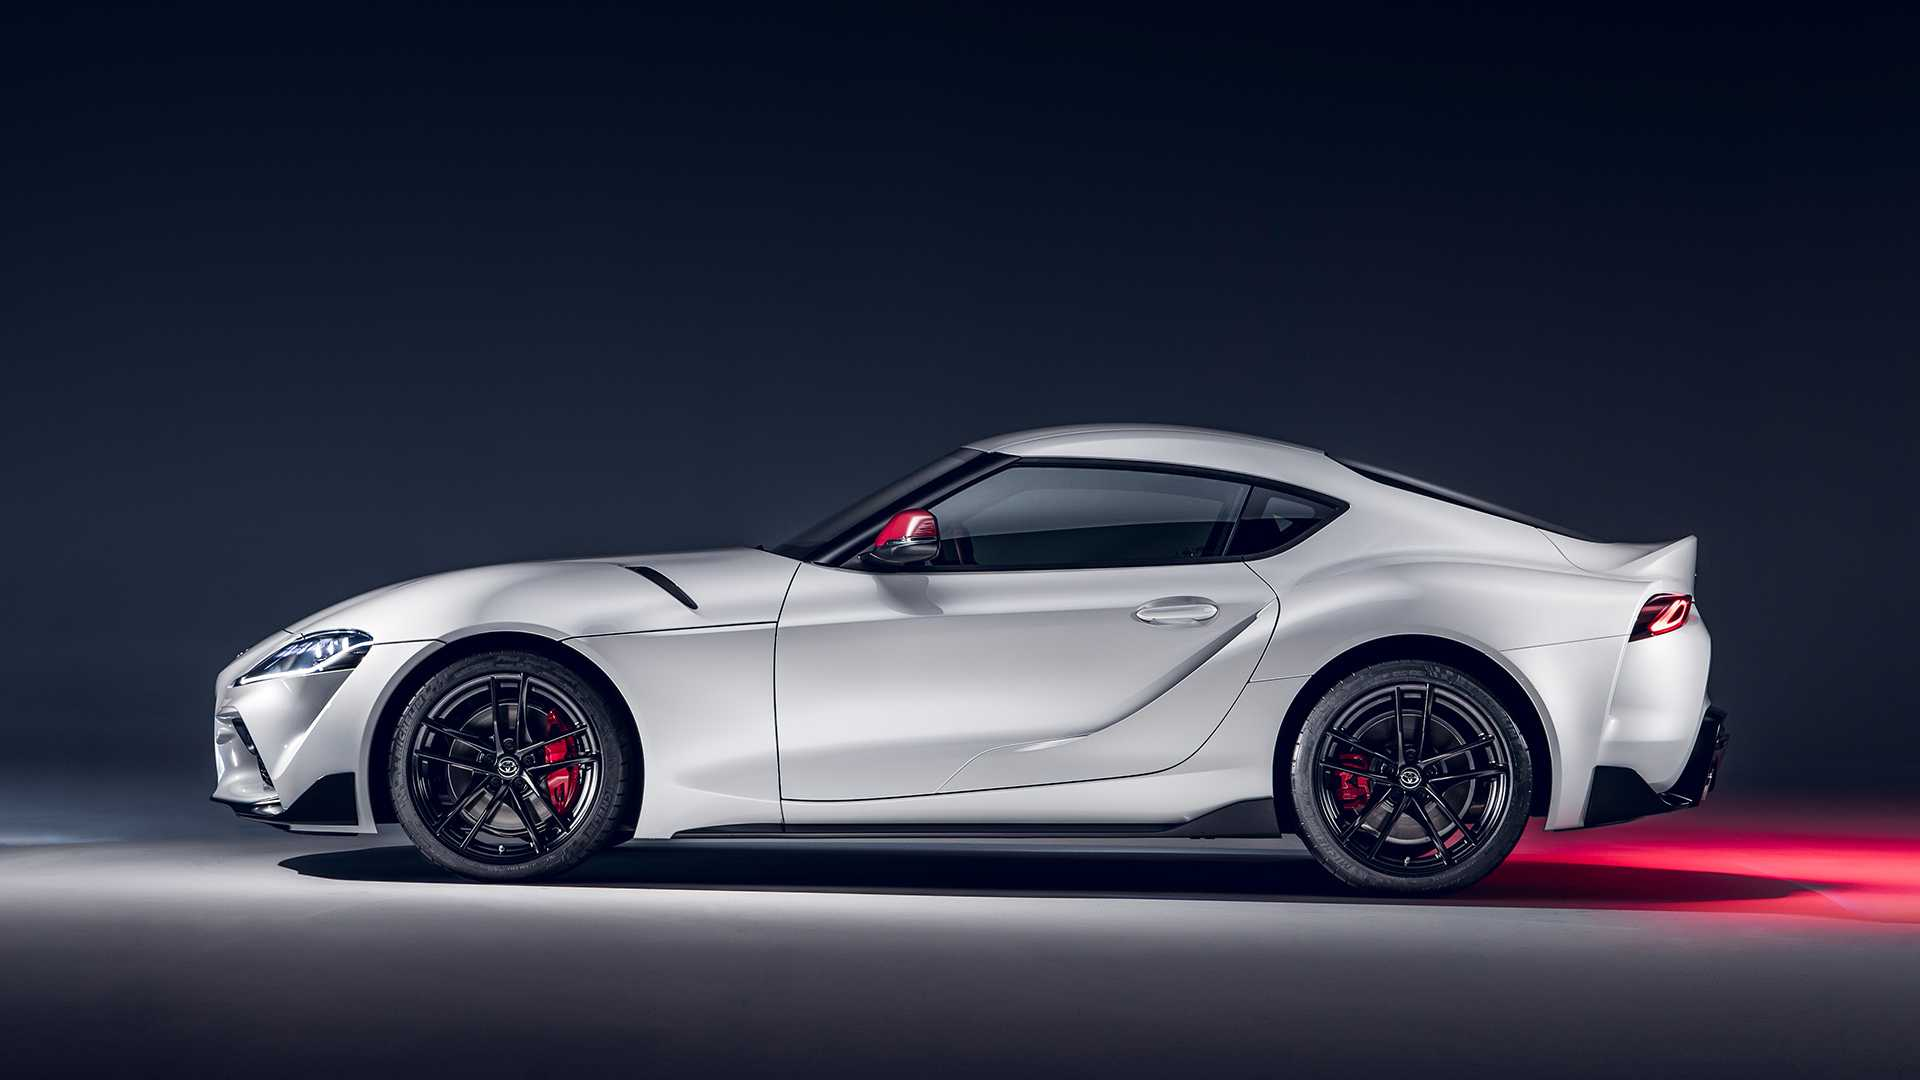 Toyota Supra Four Cylinder Engine Announced For Europe Toyota gr supra 2 fuji speedway